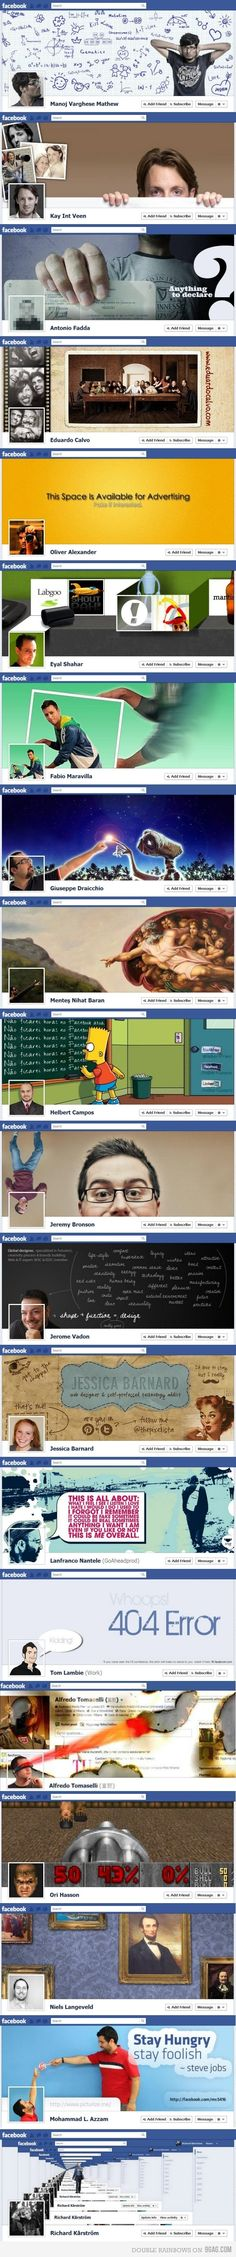 making the most of FB timeline